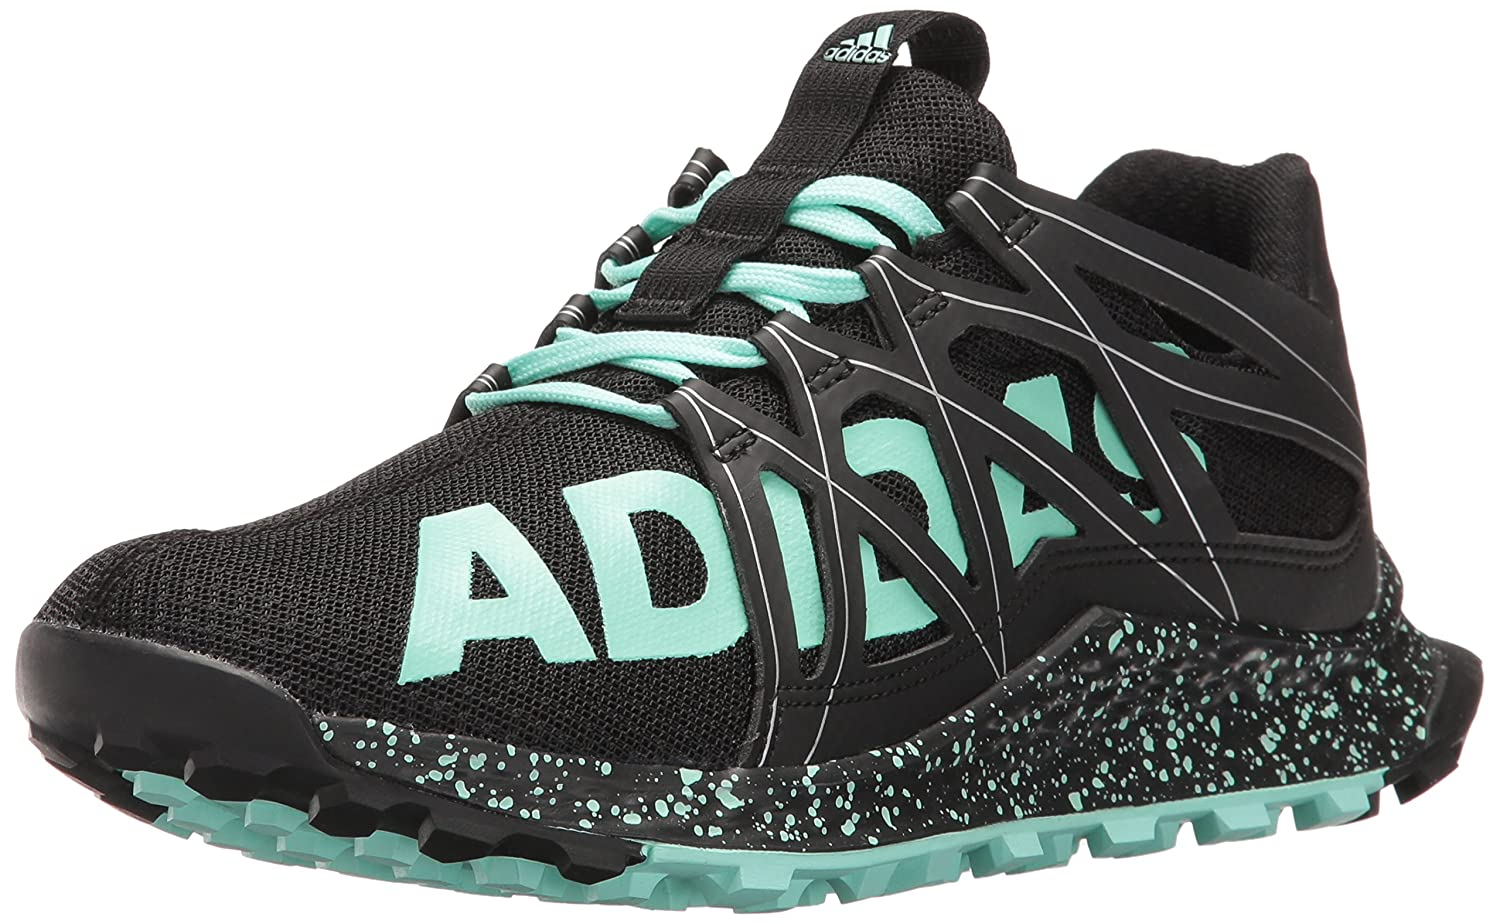 adidas Women's Vigor Bounce W Trail Runner B01H7YC8B0 8.5 B(M) US|Black/Easy Green/White